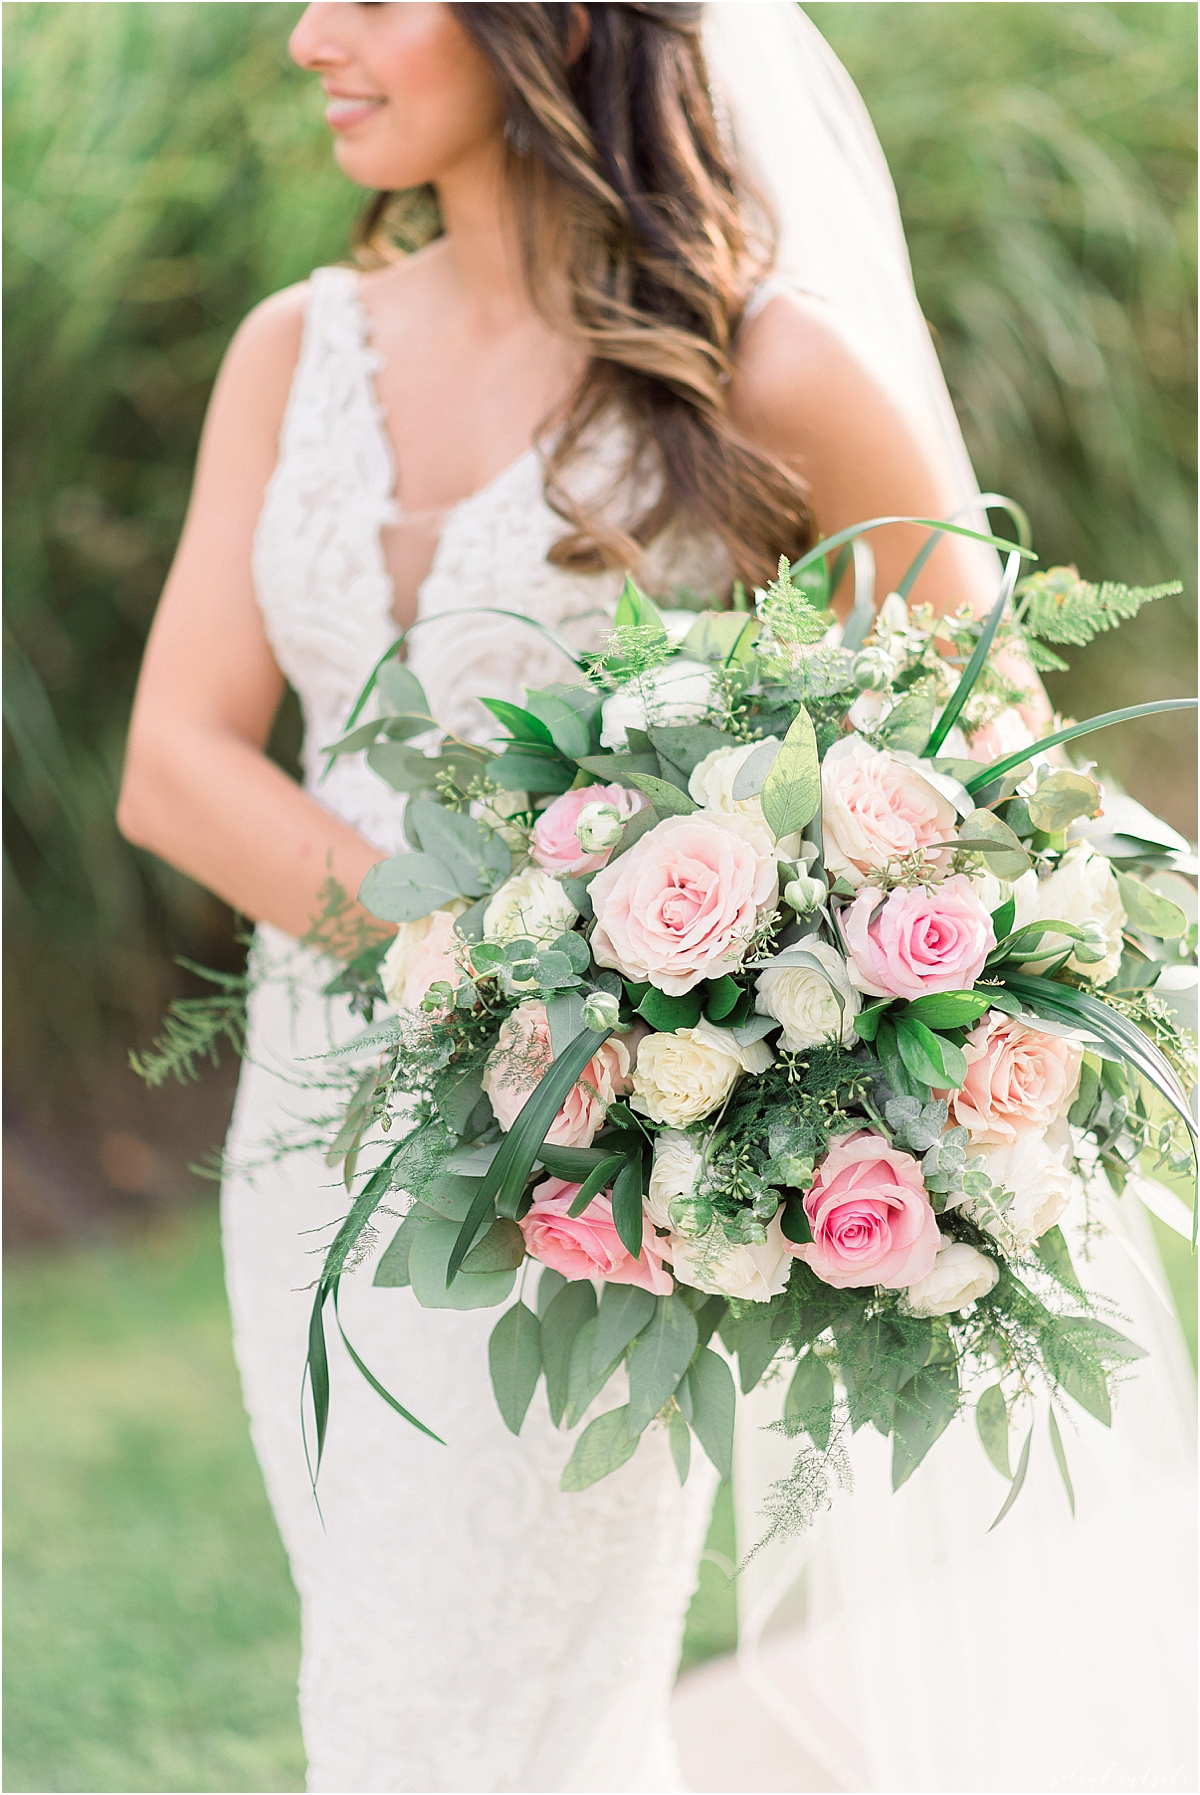 Tuscany Falls Wedding + Light and Airy Wedding Photographer Chicago, Mokena Wedding Photographer + Chicago Latino Photography + Naperville Wedding Photographer + Chicago Engagement Photographer + Best Photographer In Chicago_0055.jpg